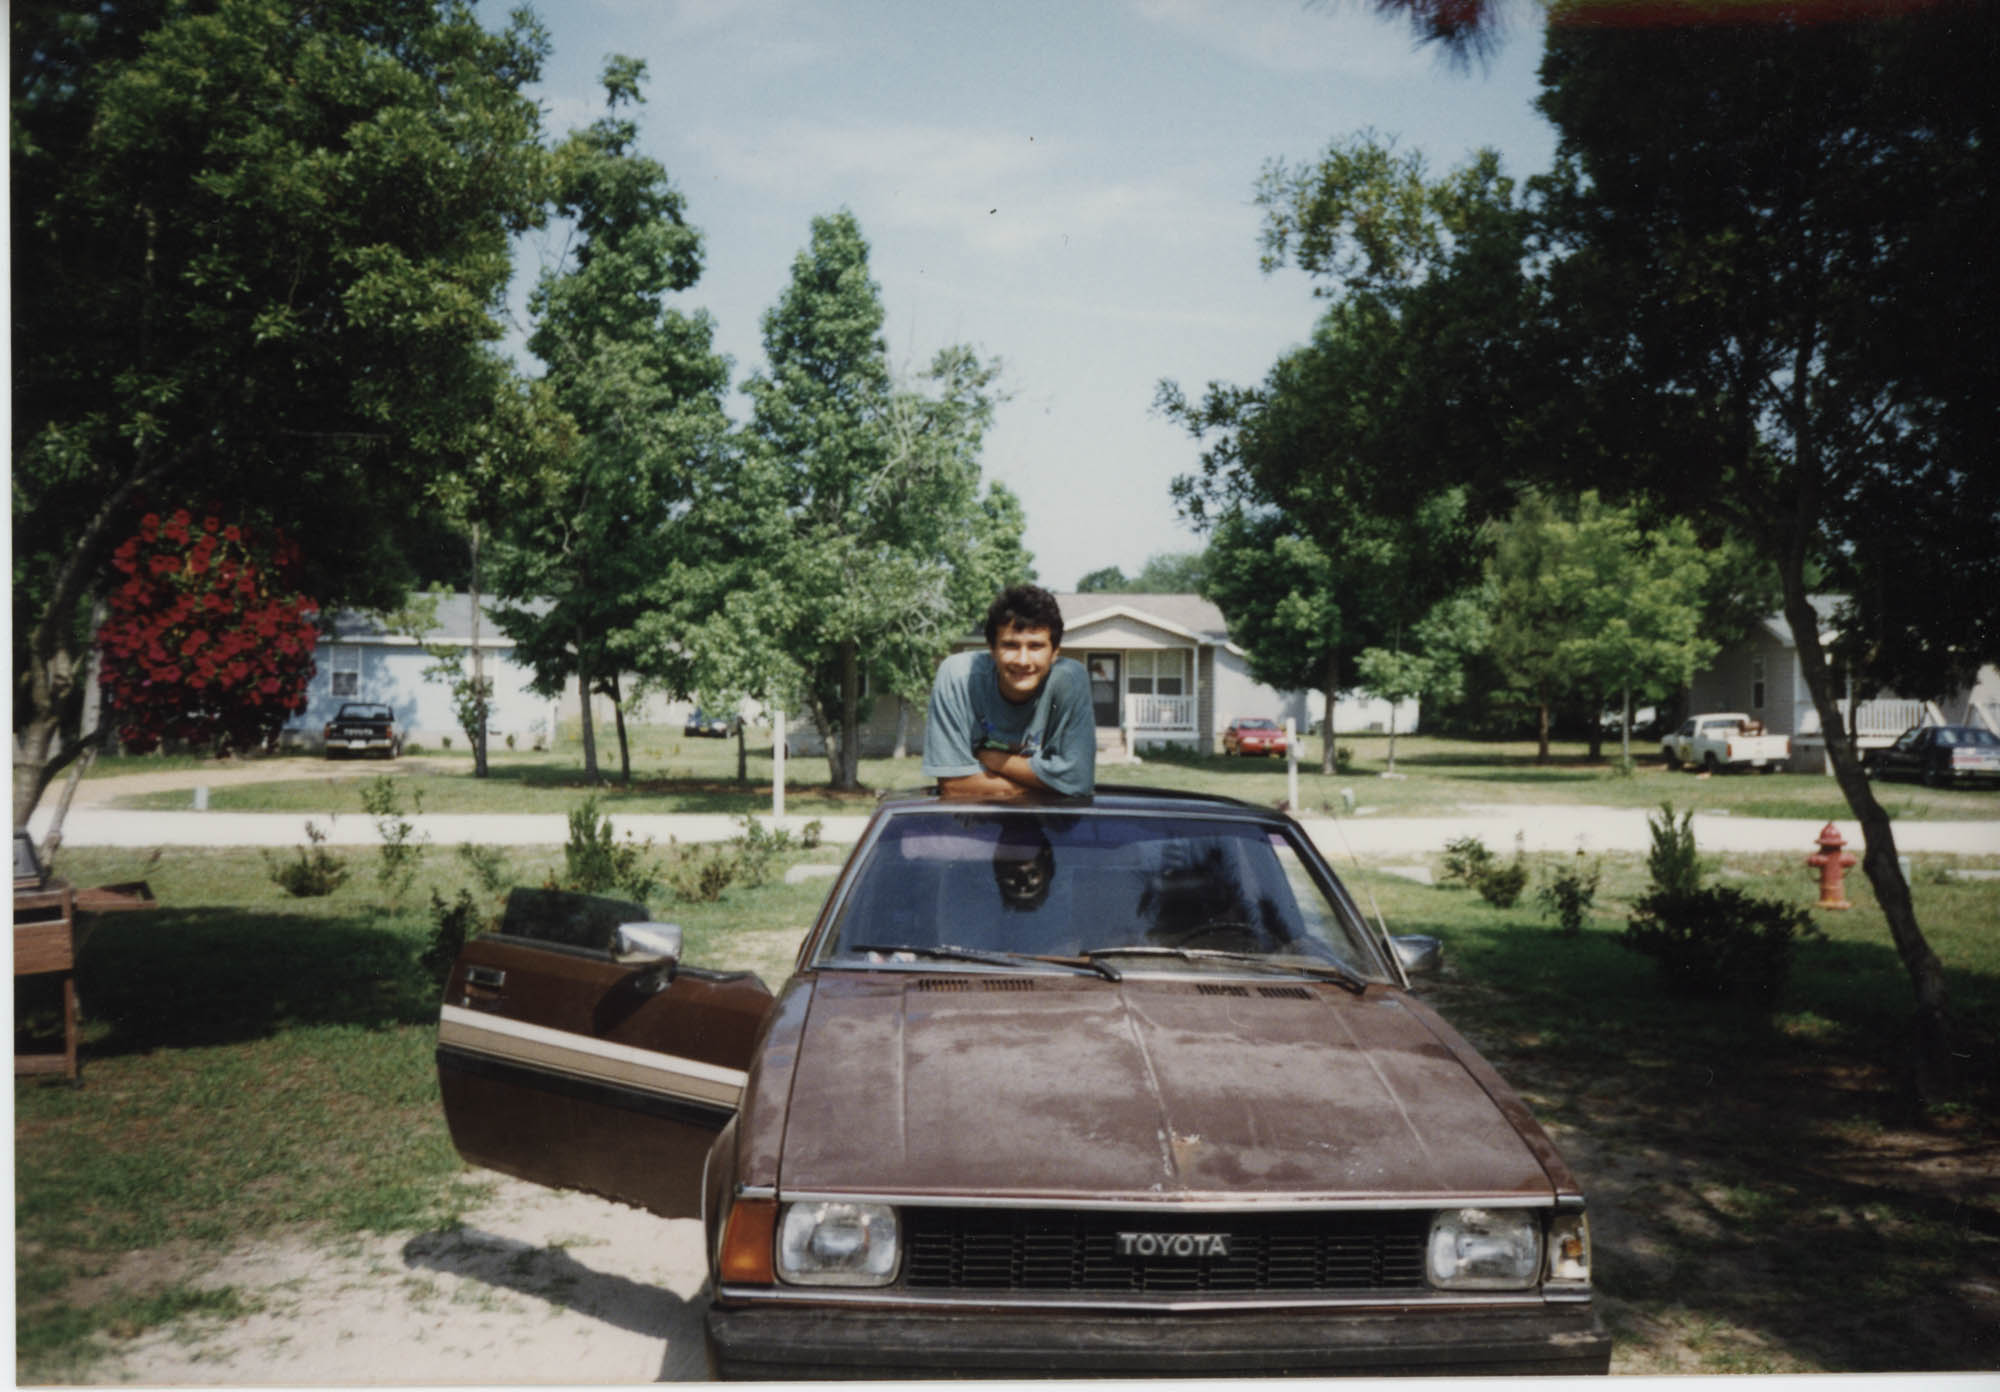 Fotografía de un joven y su carro  /  Photograph of Young Man and his Car